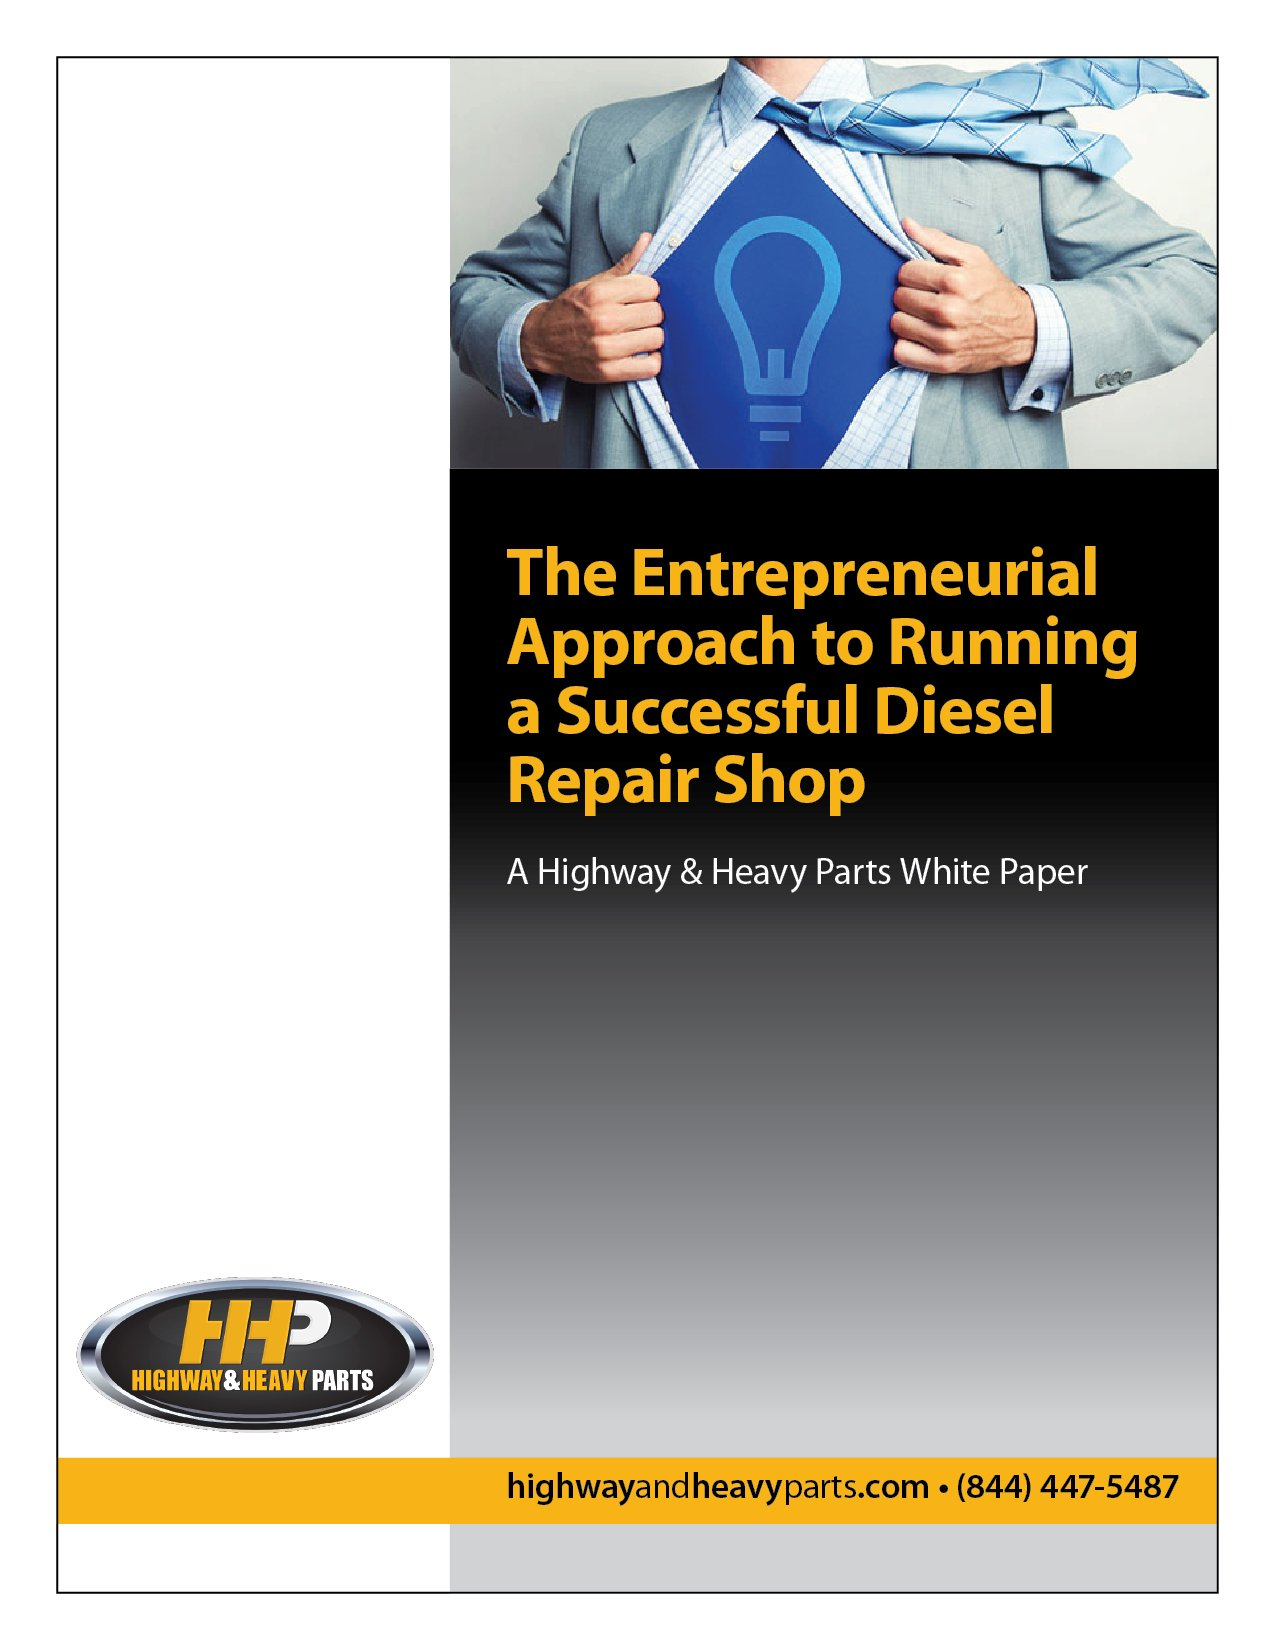 The Entrepreneurial Approach wp cover